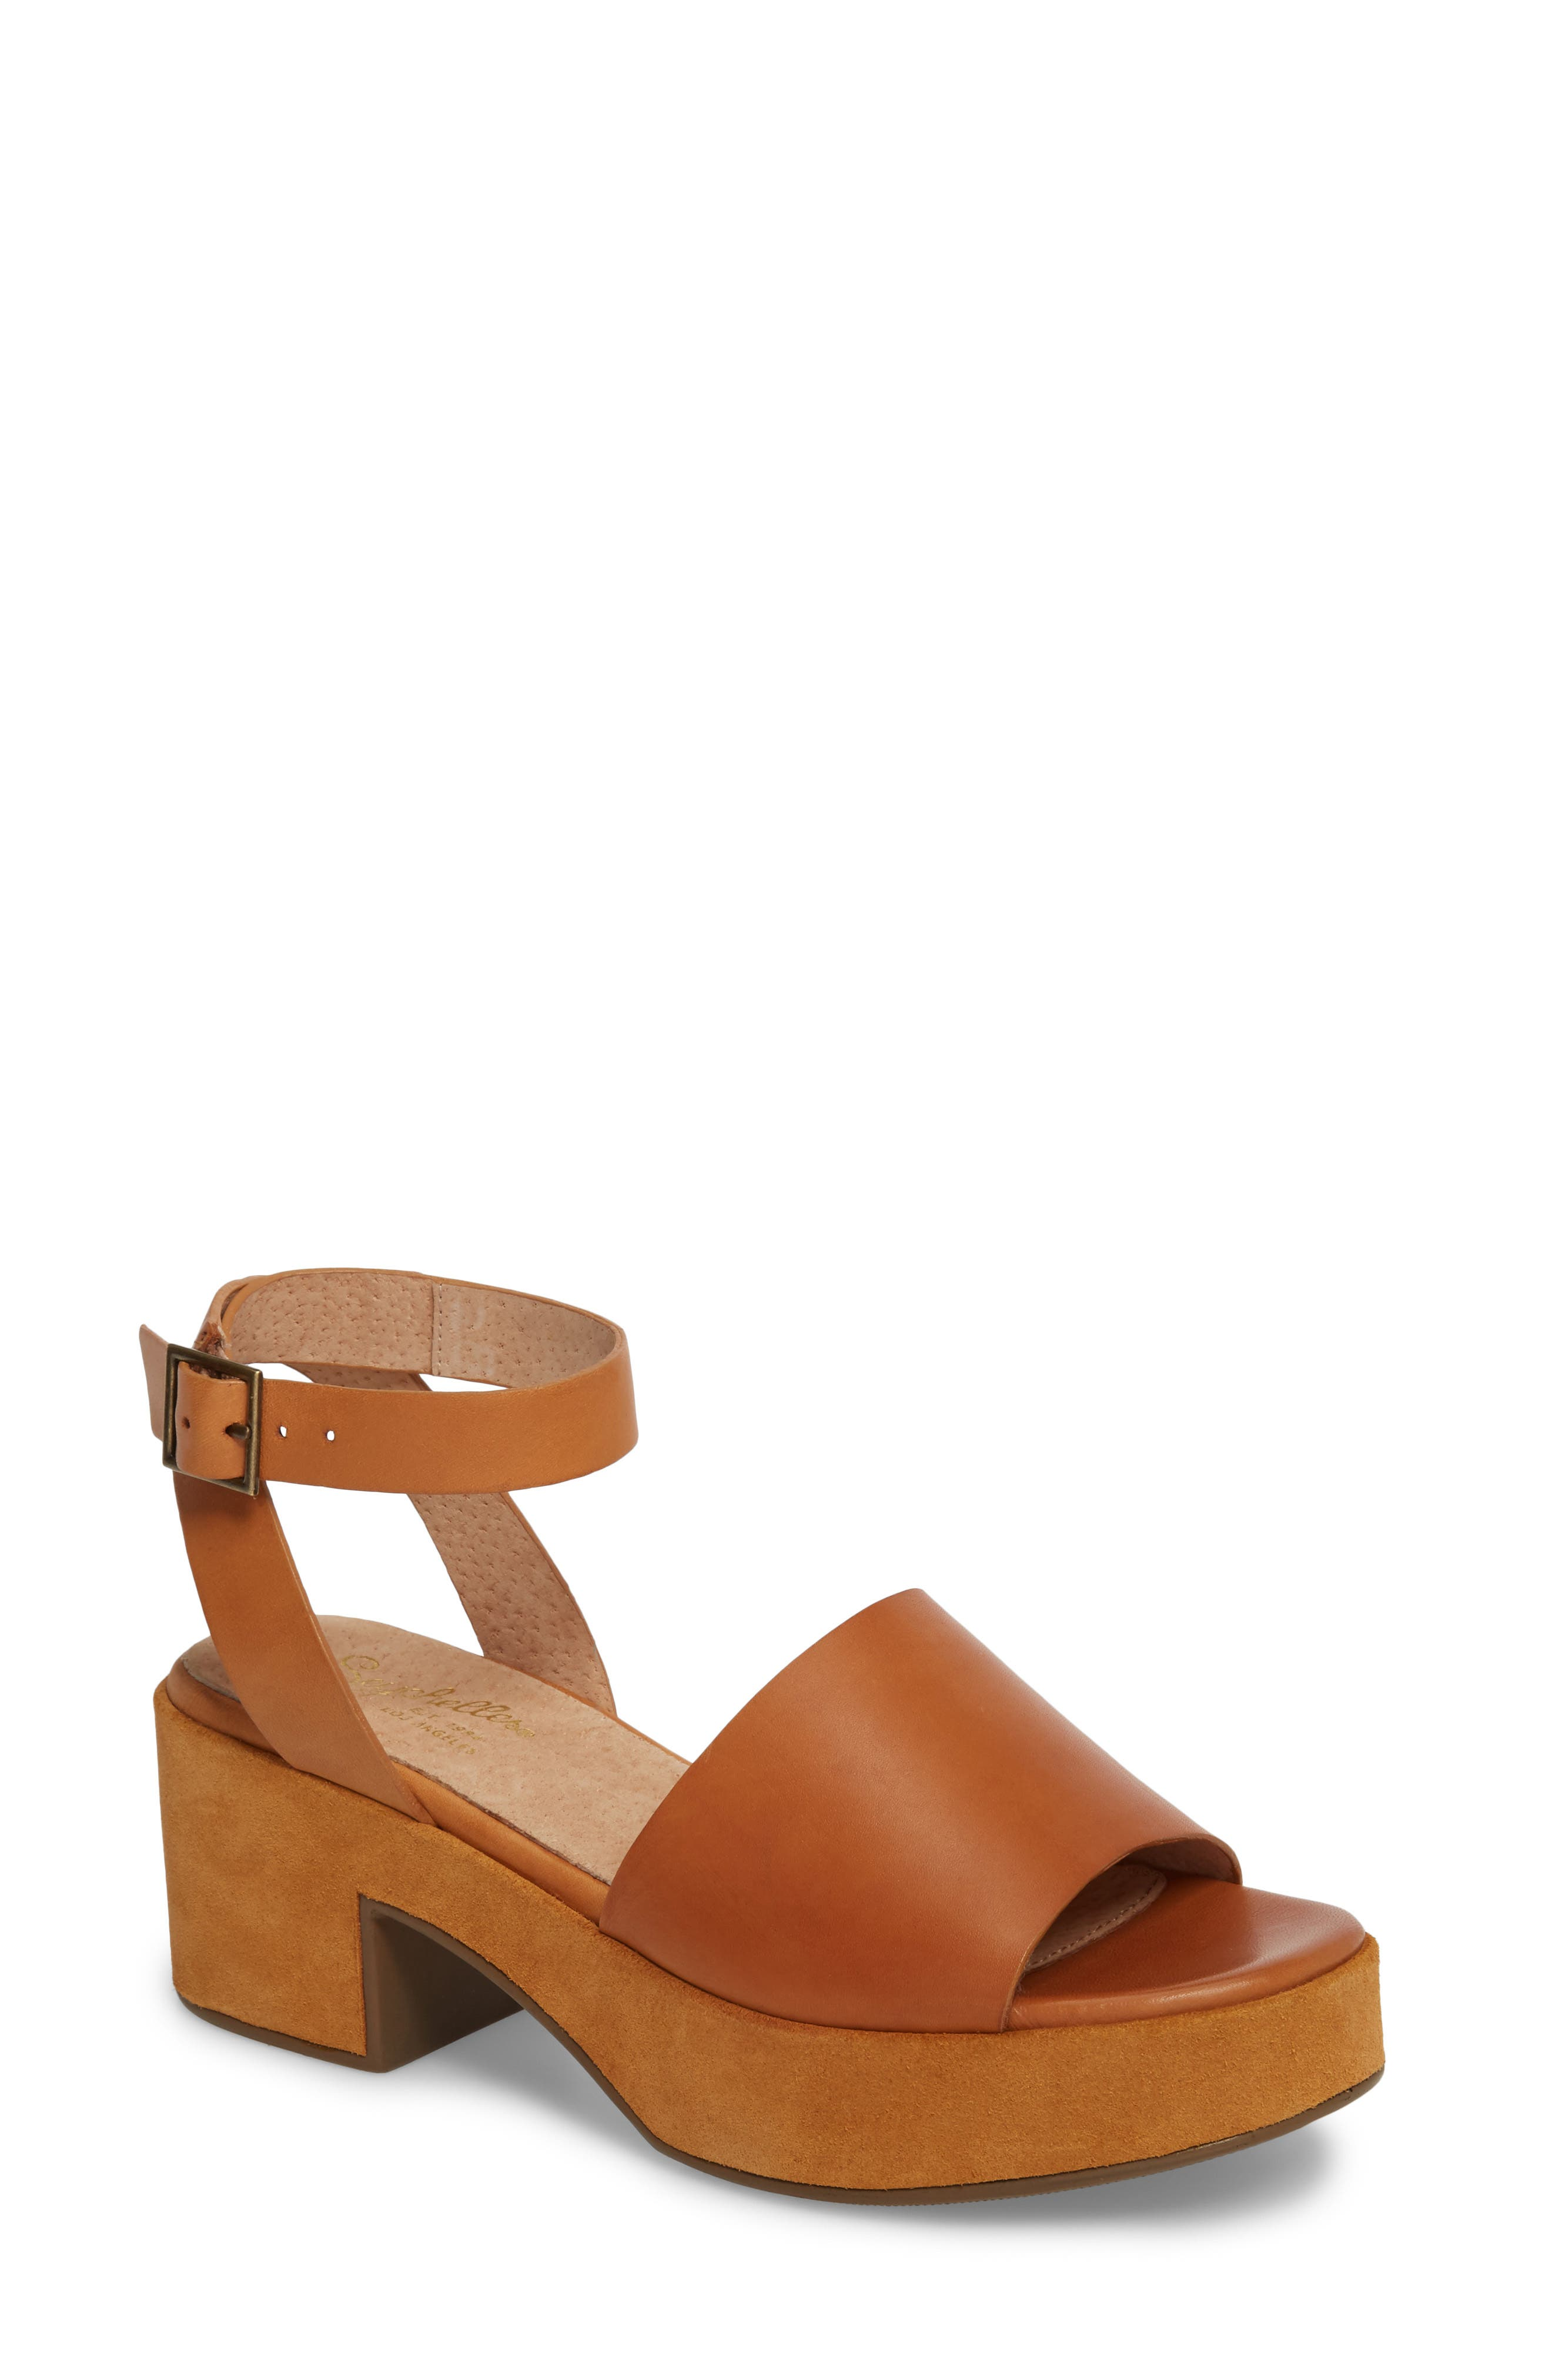 Calming Influence Platform Sandal,                         Main,                         color, Tan Leather